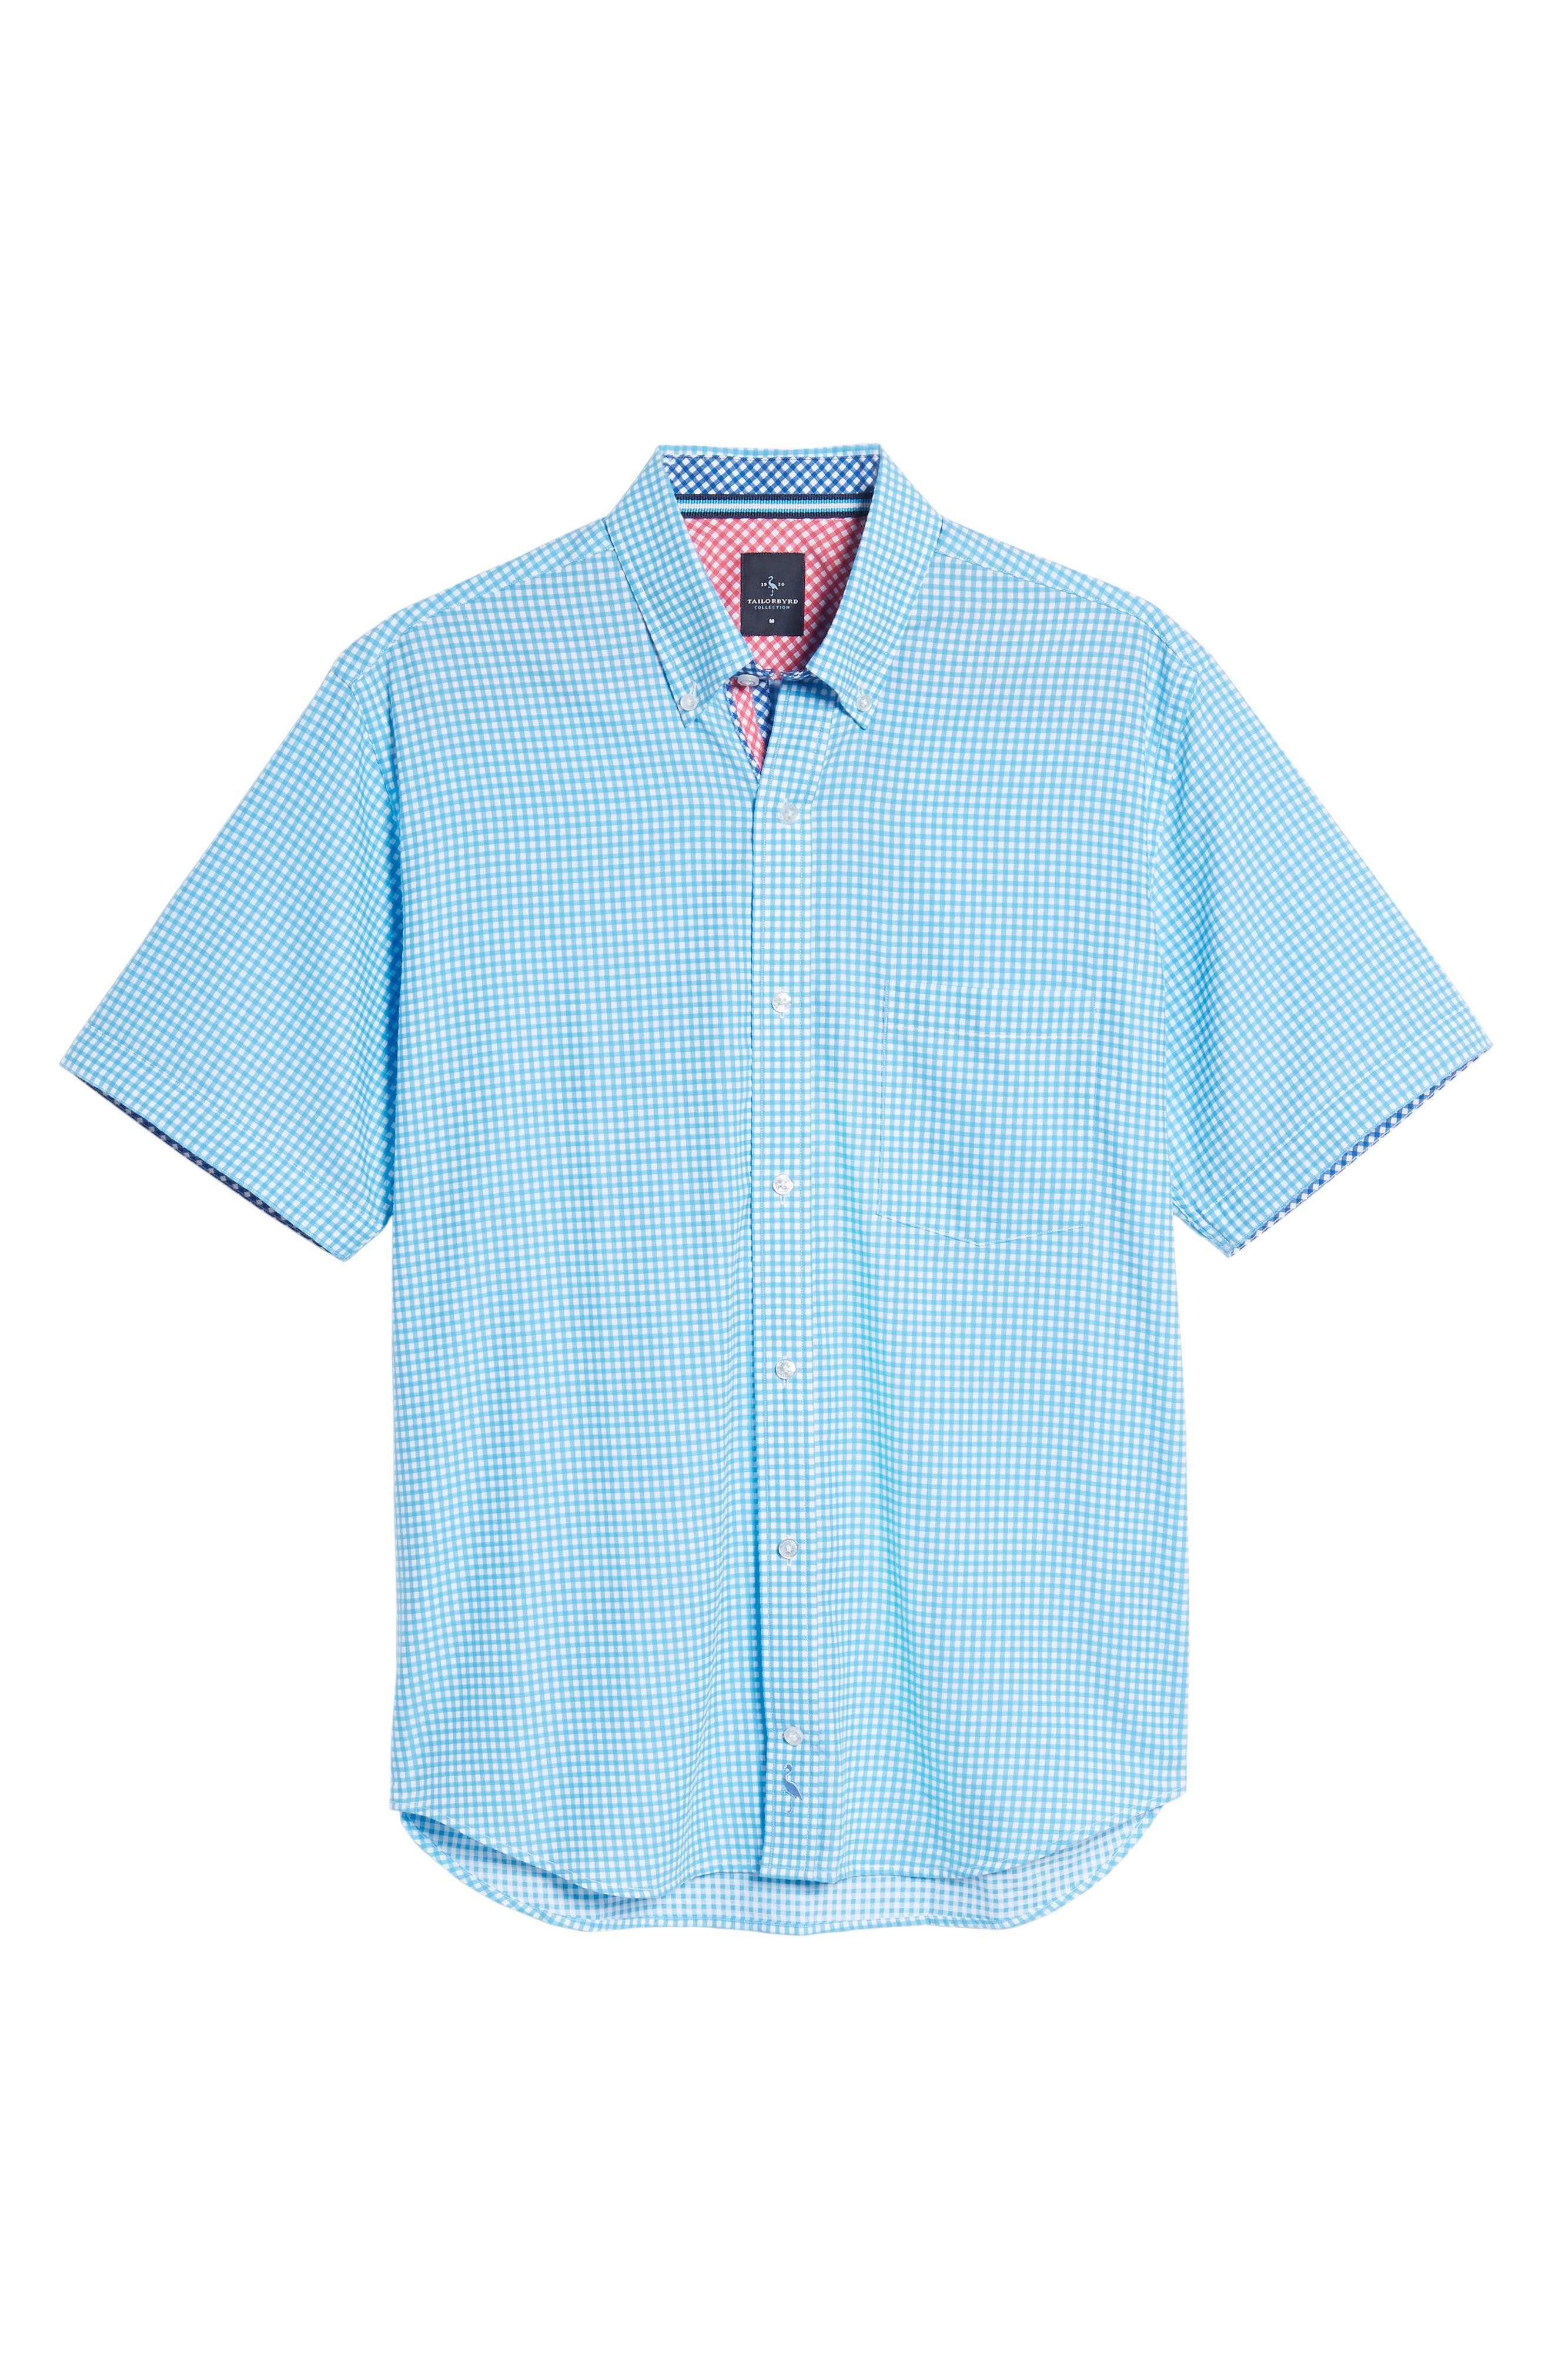 Aden Regular Fit Sport Shirt,                             Alternate thumbnail 6, color,                             465